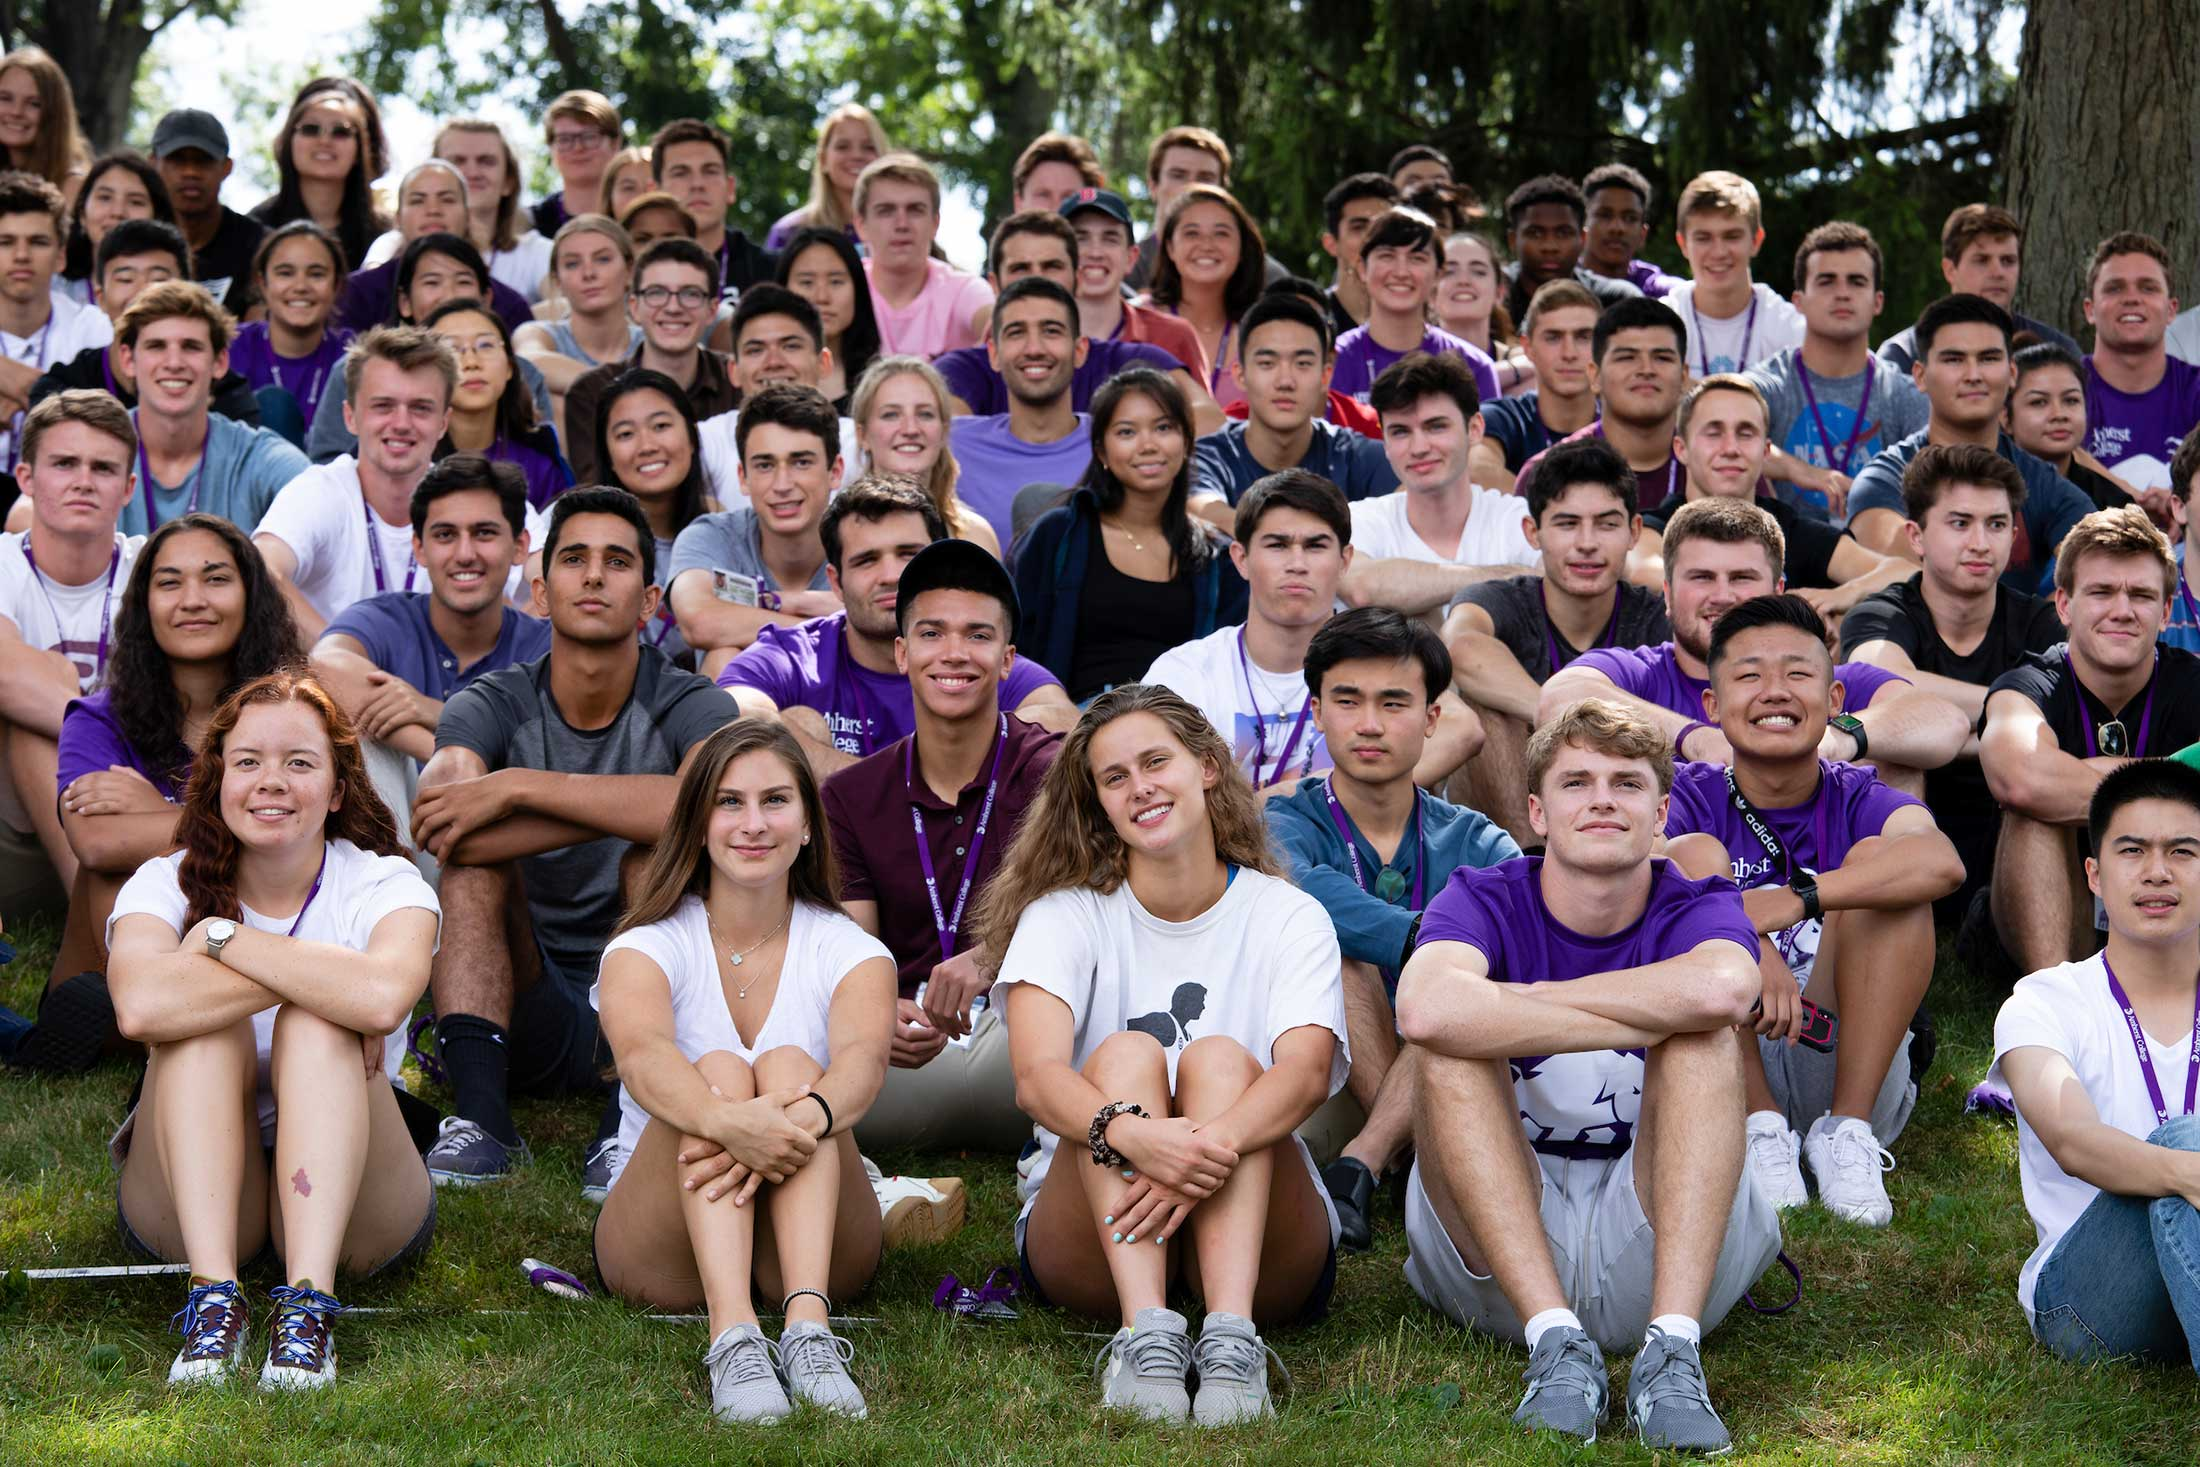 A group shot of the class of 2023